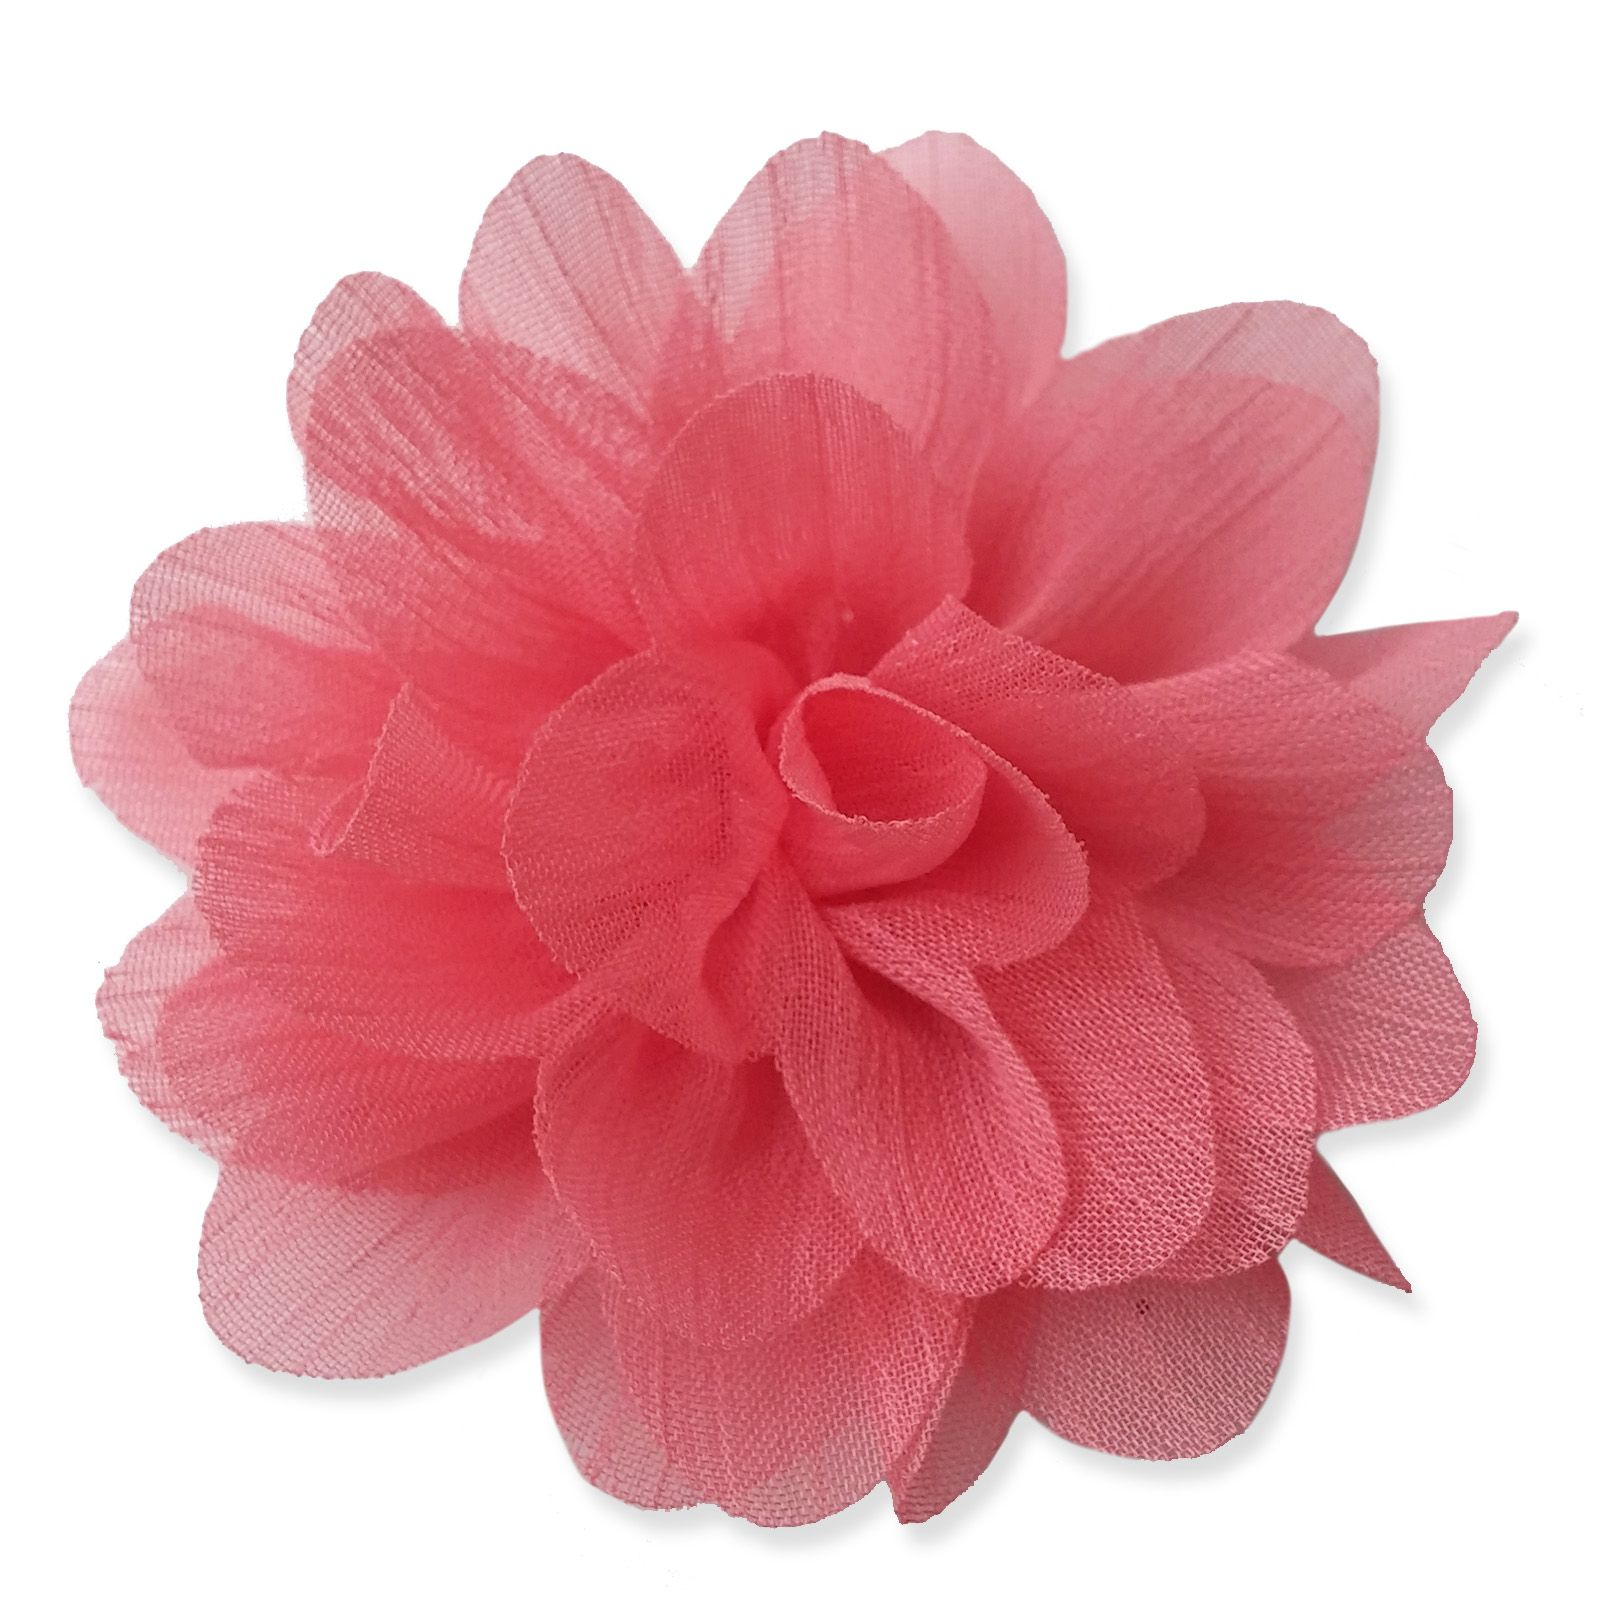 7cm Lily Blush Pink Fabric Flower Applique